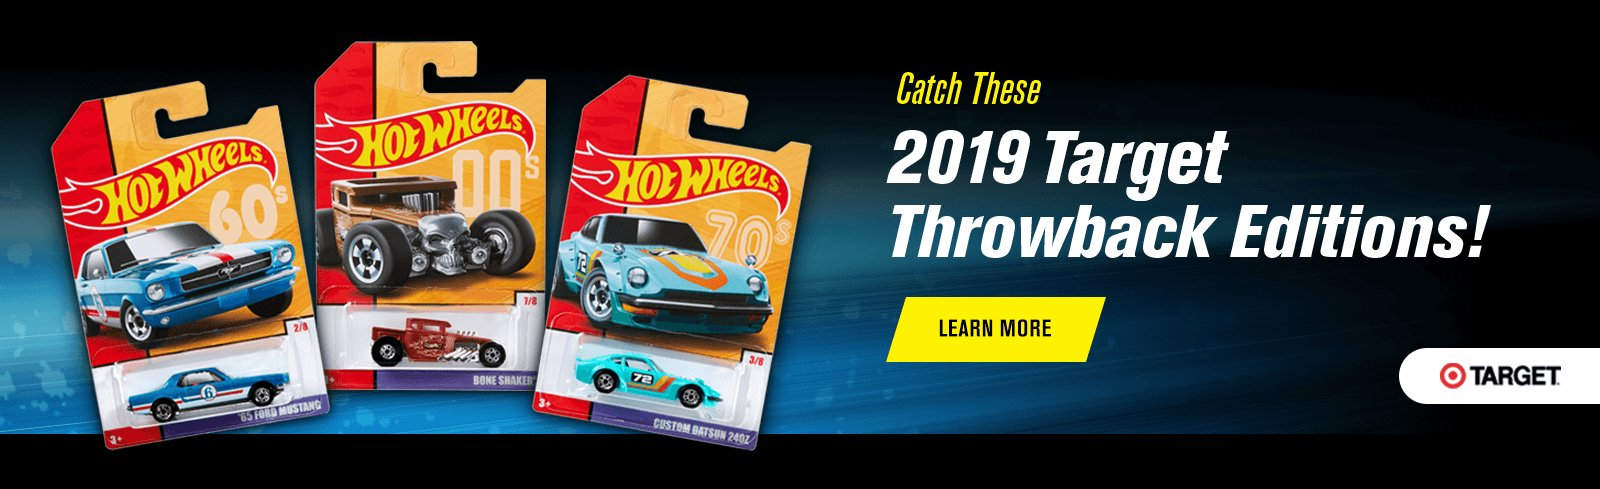 Catch These 2019 Target Throwback Editions!